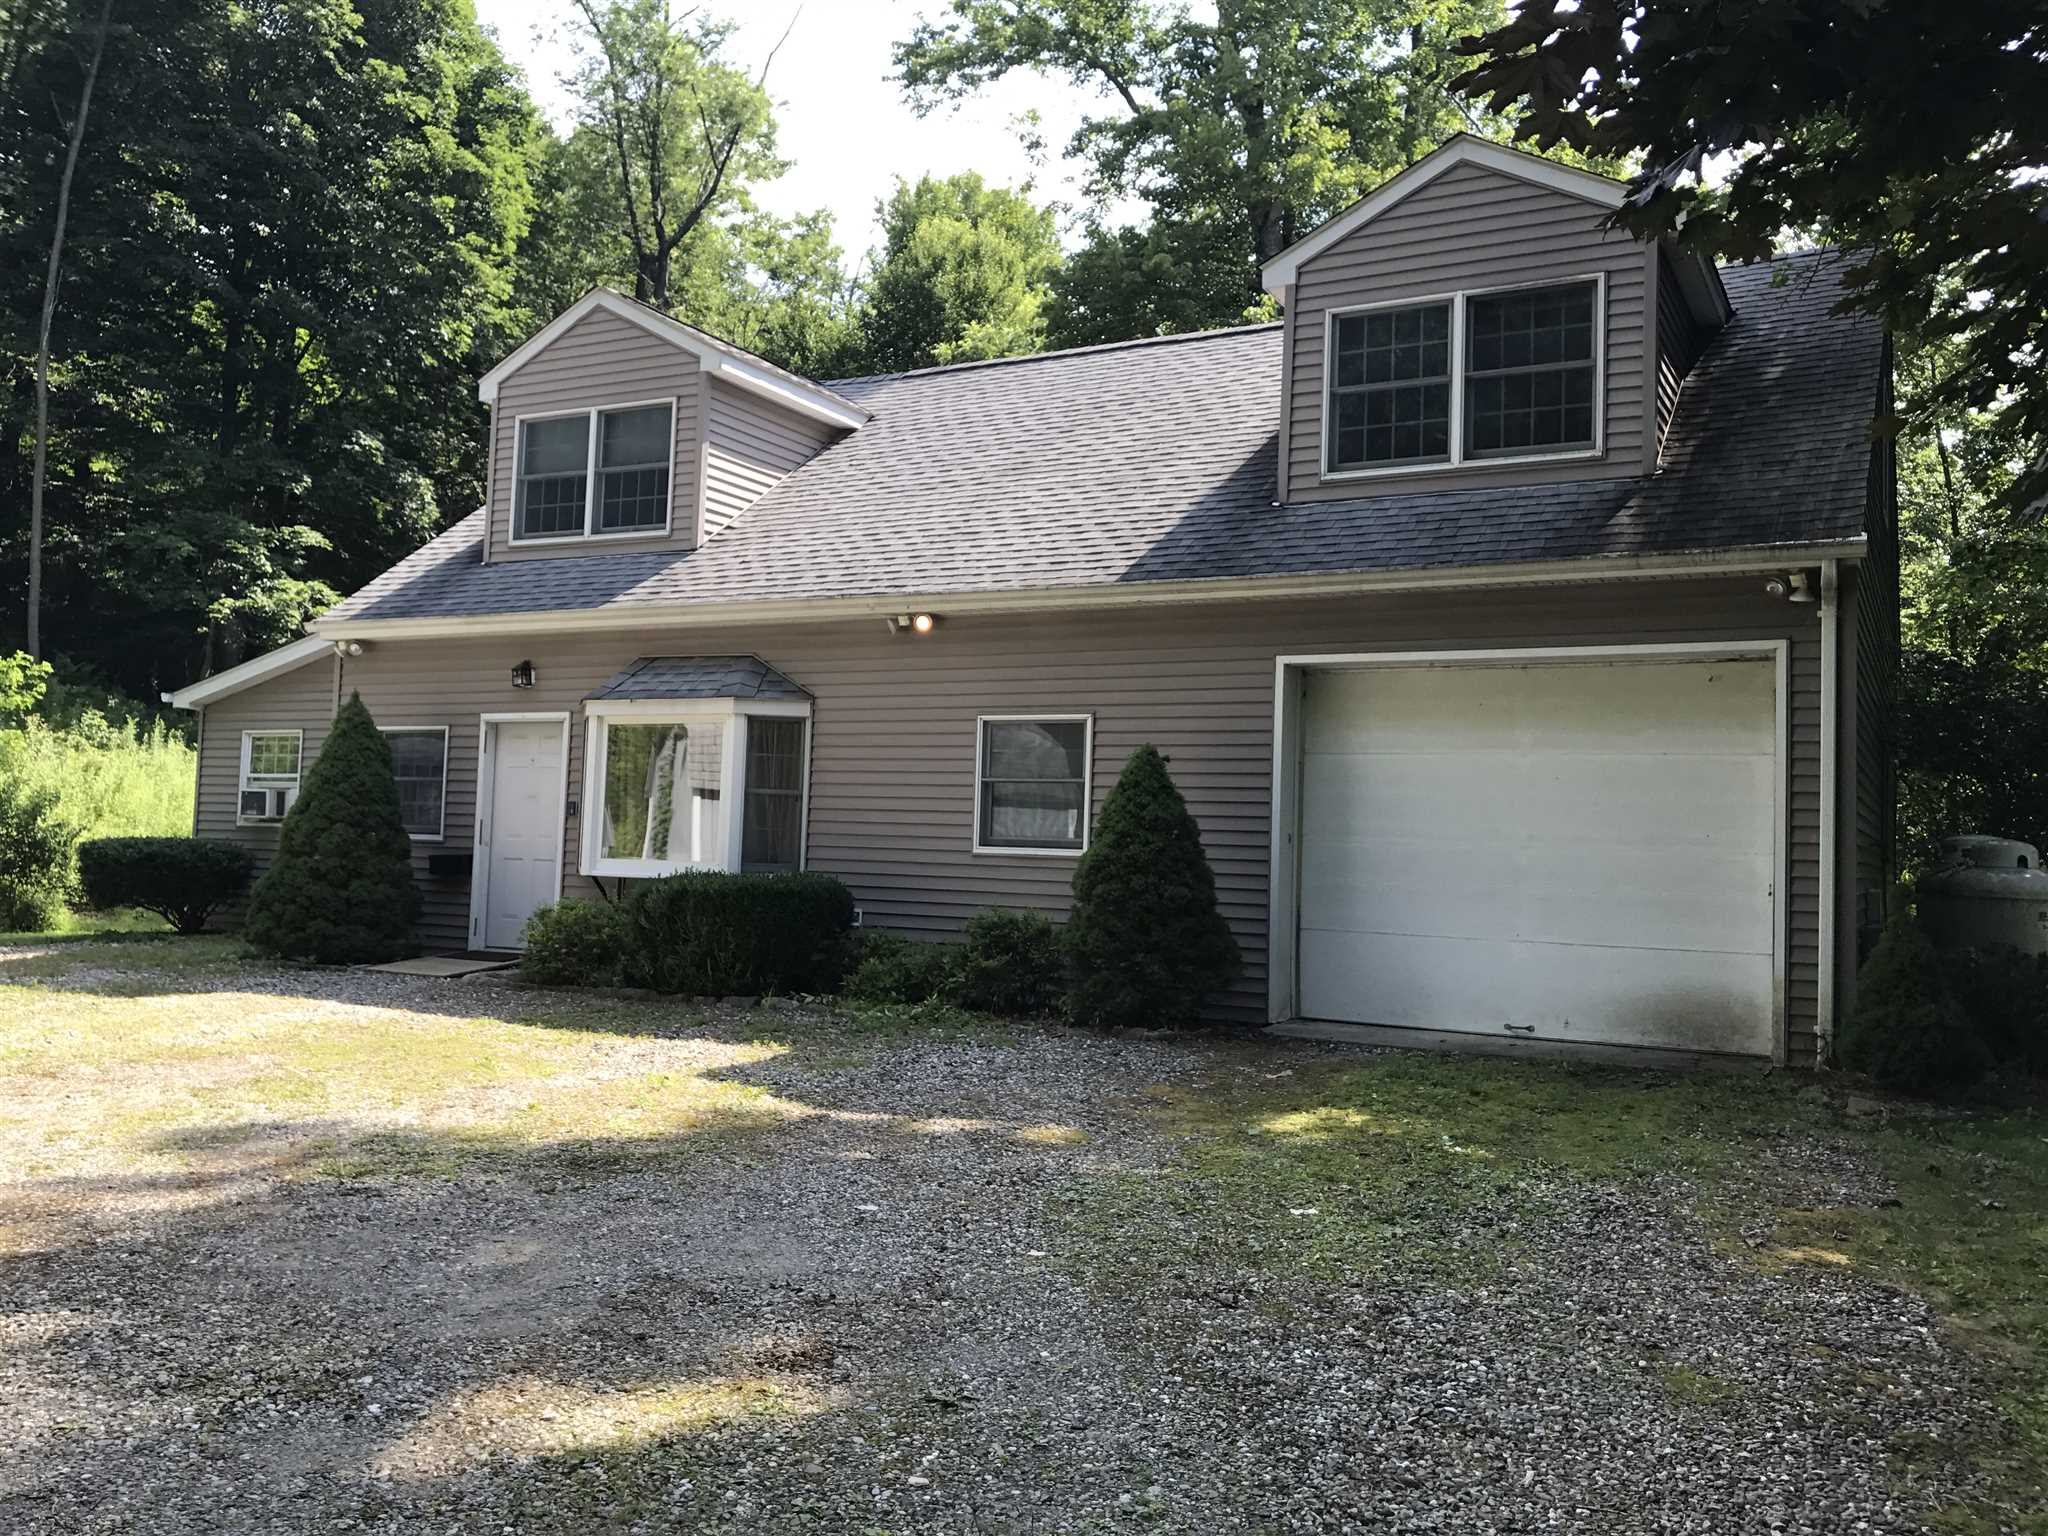 Single Family Home for Sale at 38 NANNY HILL ROAD 38 NANNY HILL ROAD Dover Plains, New York 12564 United States